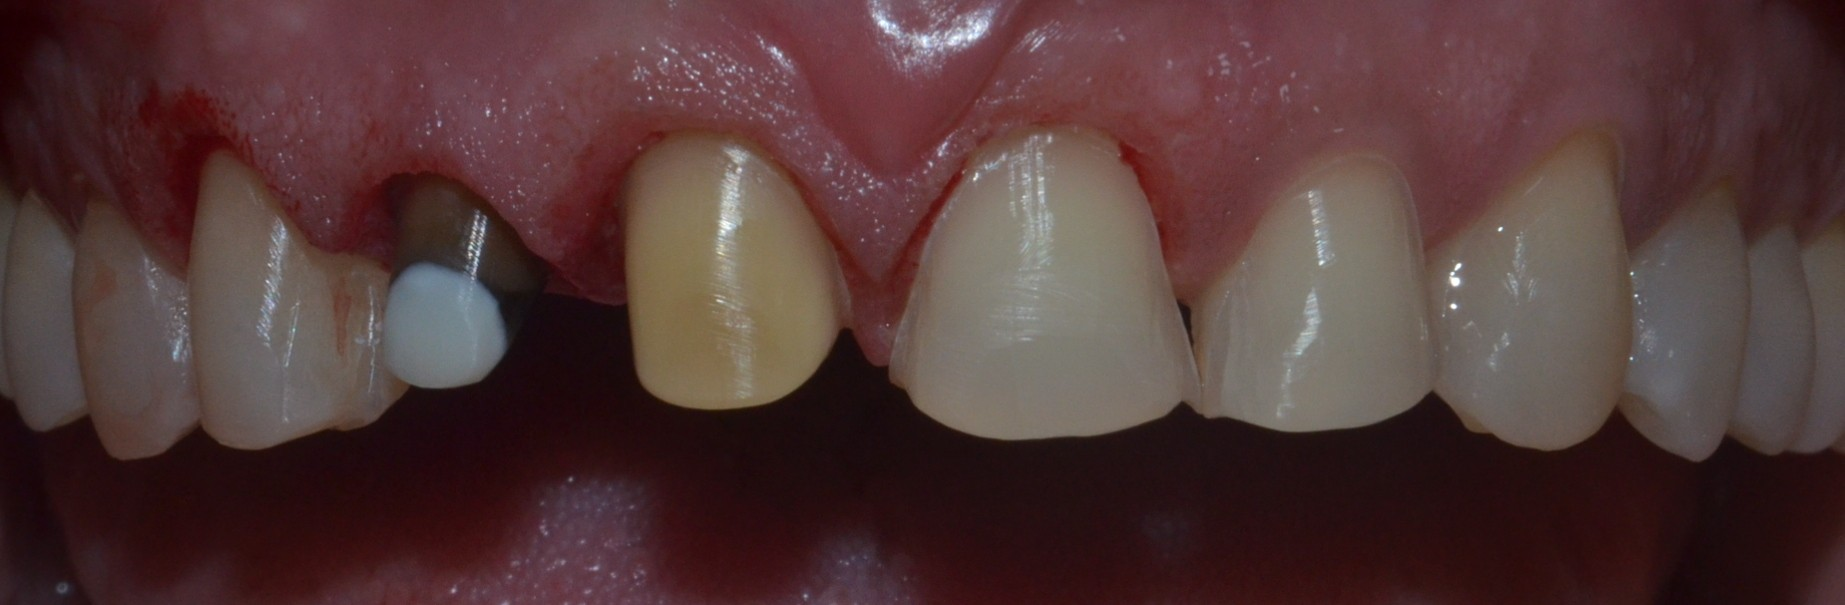 After teeth preparation